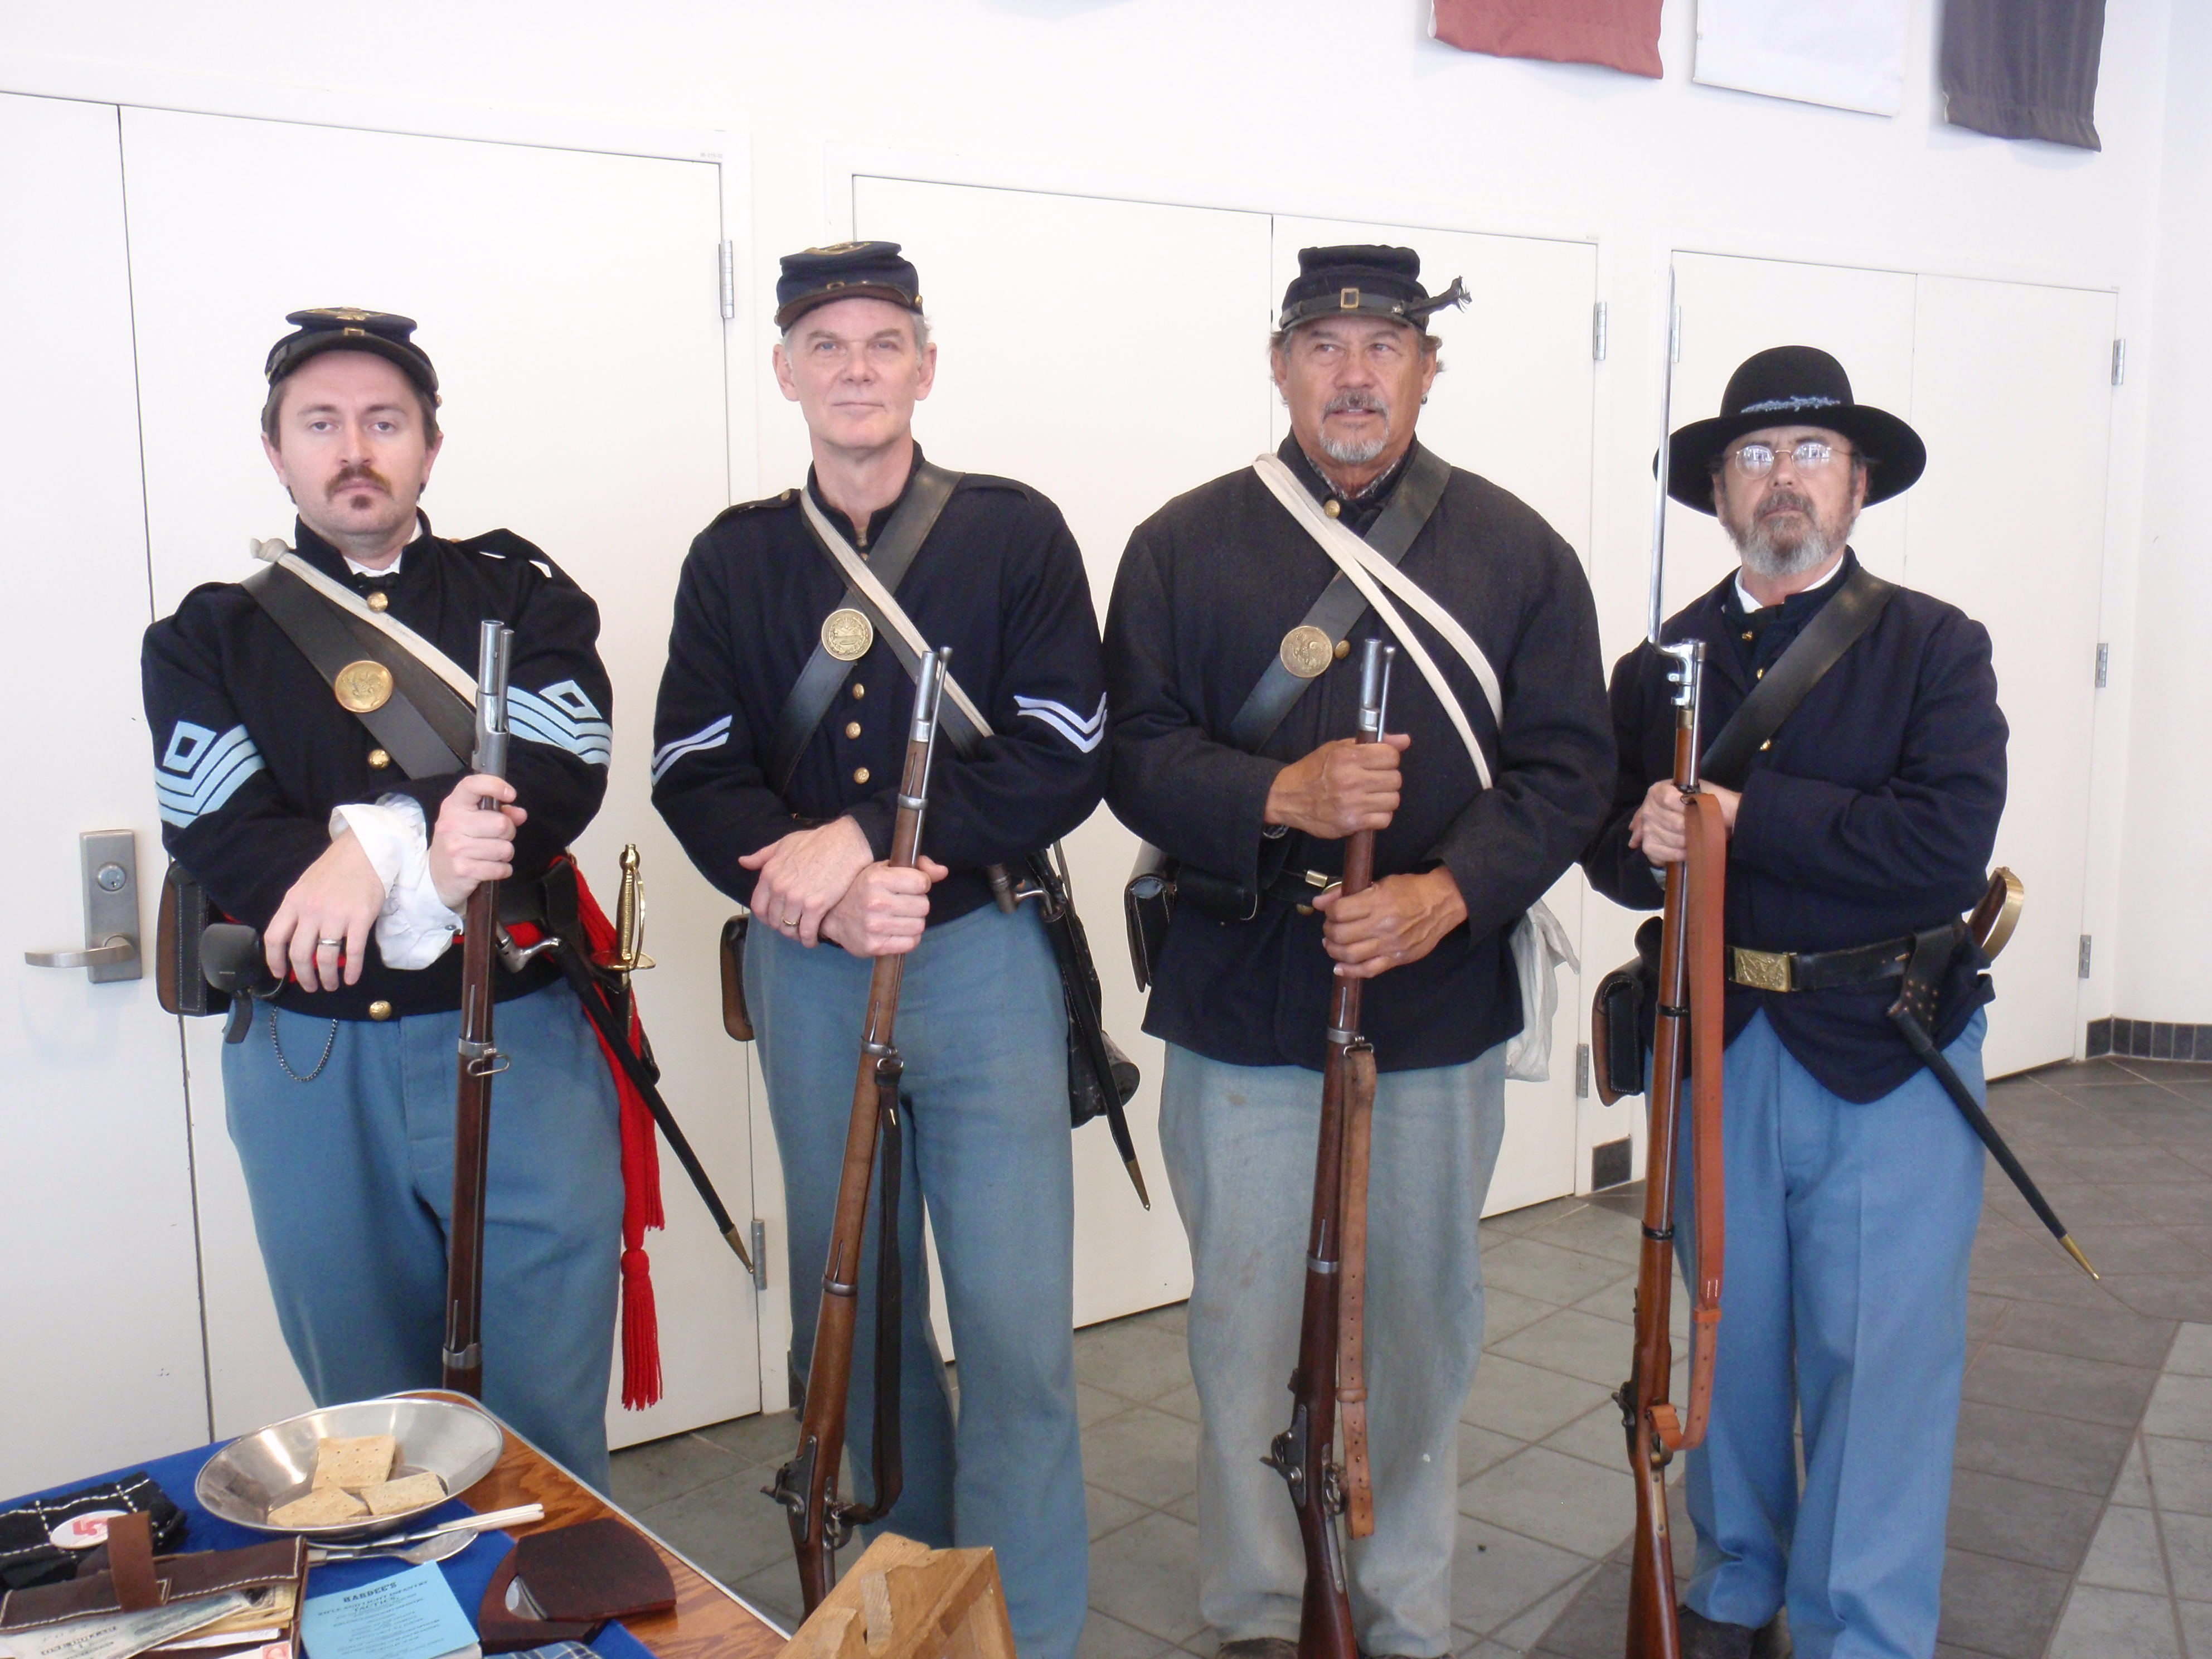 Union soldier reenactors at Azusa Pacific University on 3/1/14. I do not recall what unit they are with. Photo by James Ulvog.